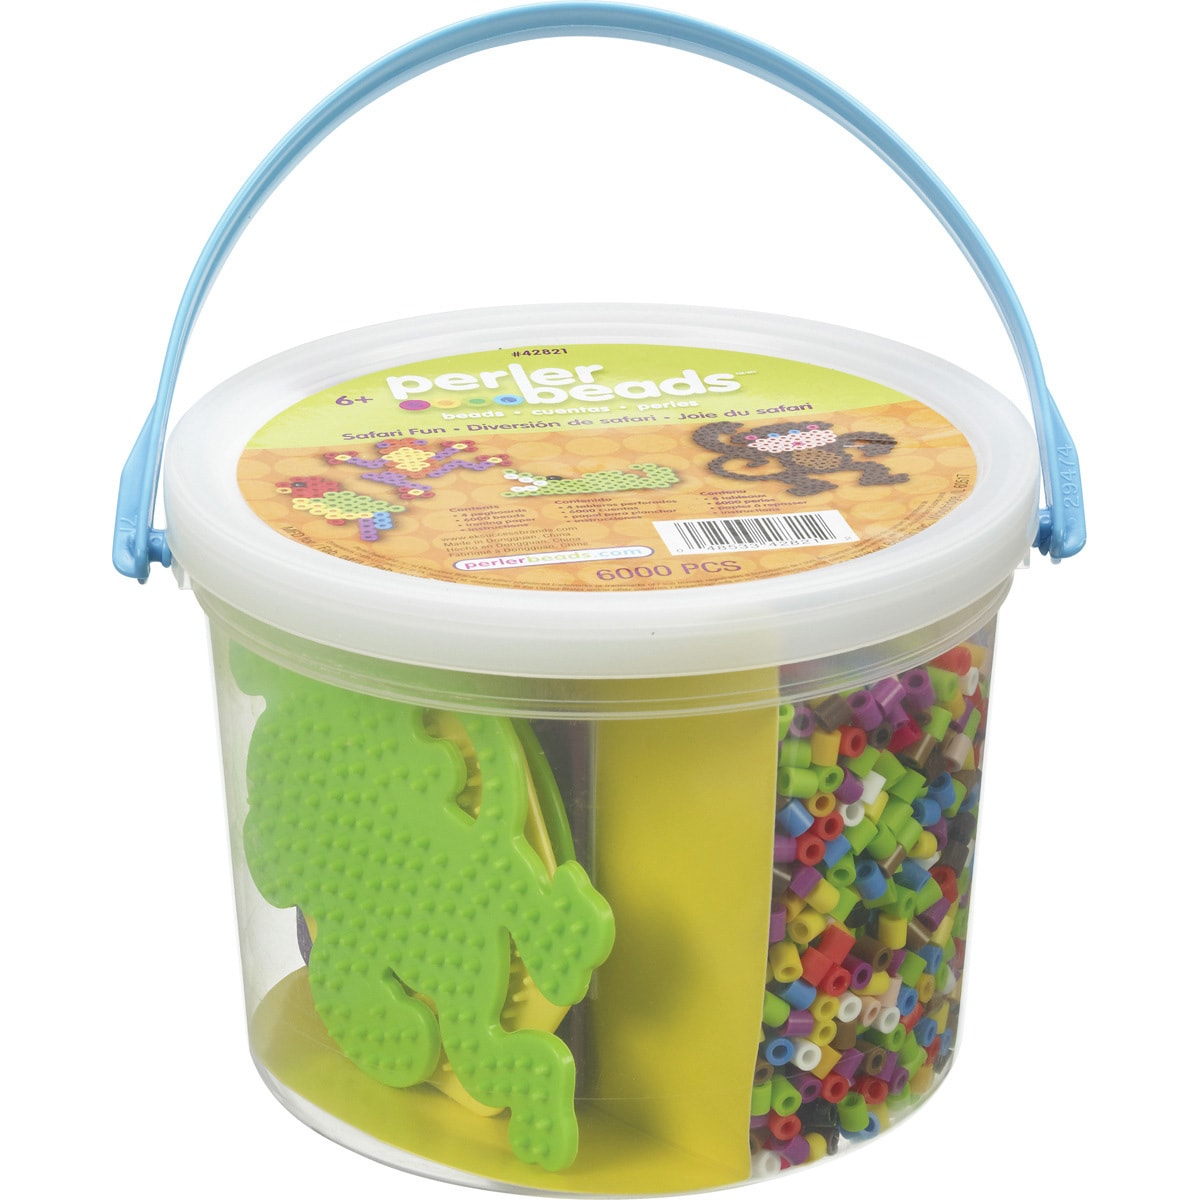 Perler Fun Fusion Fuse Bead Activity Bucket-Safari Fun (S...